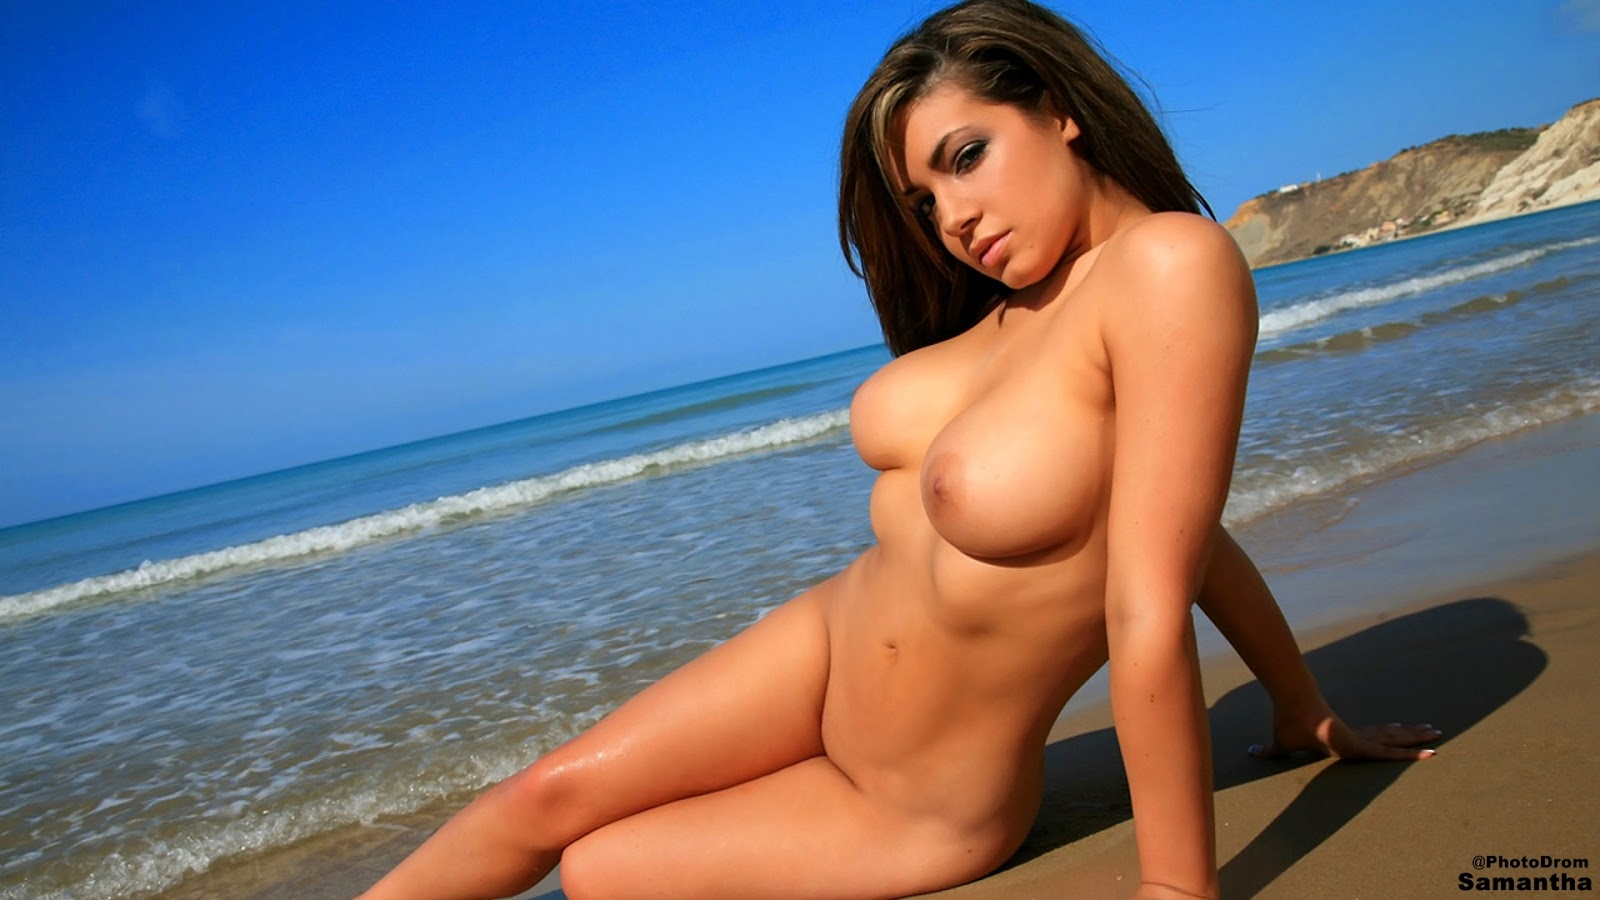 w810 naked women themes for